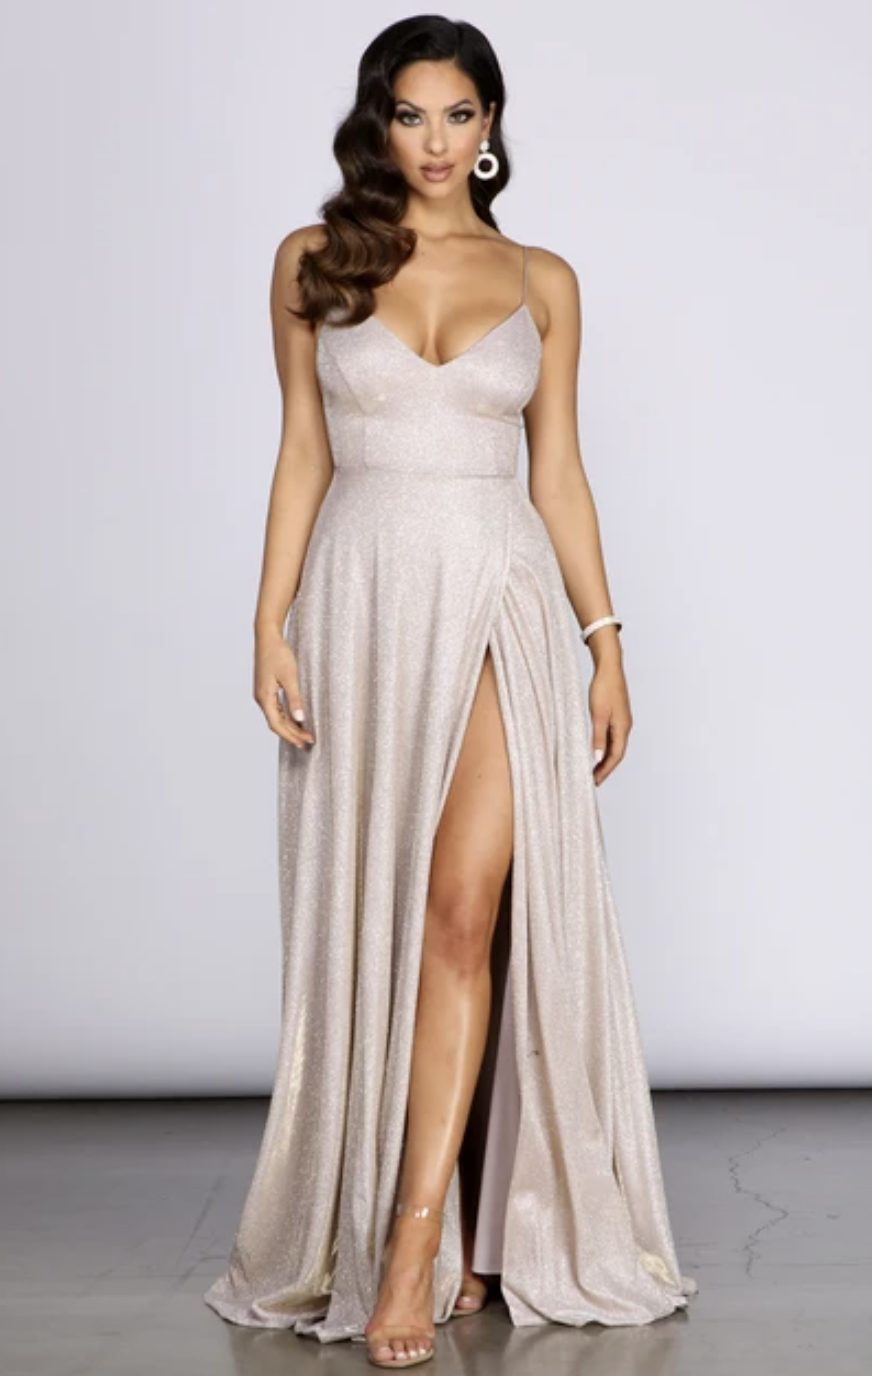 Silver shint prom dress with sequins and split